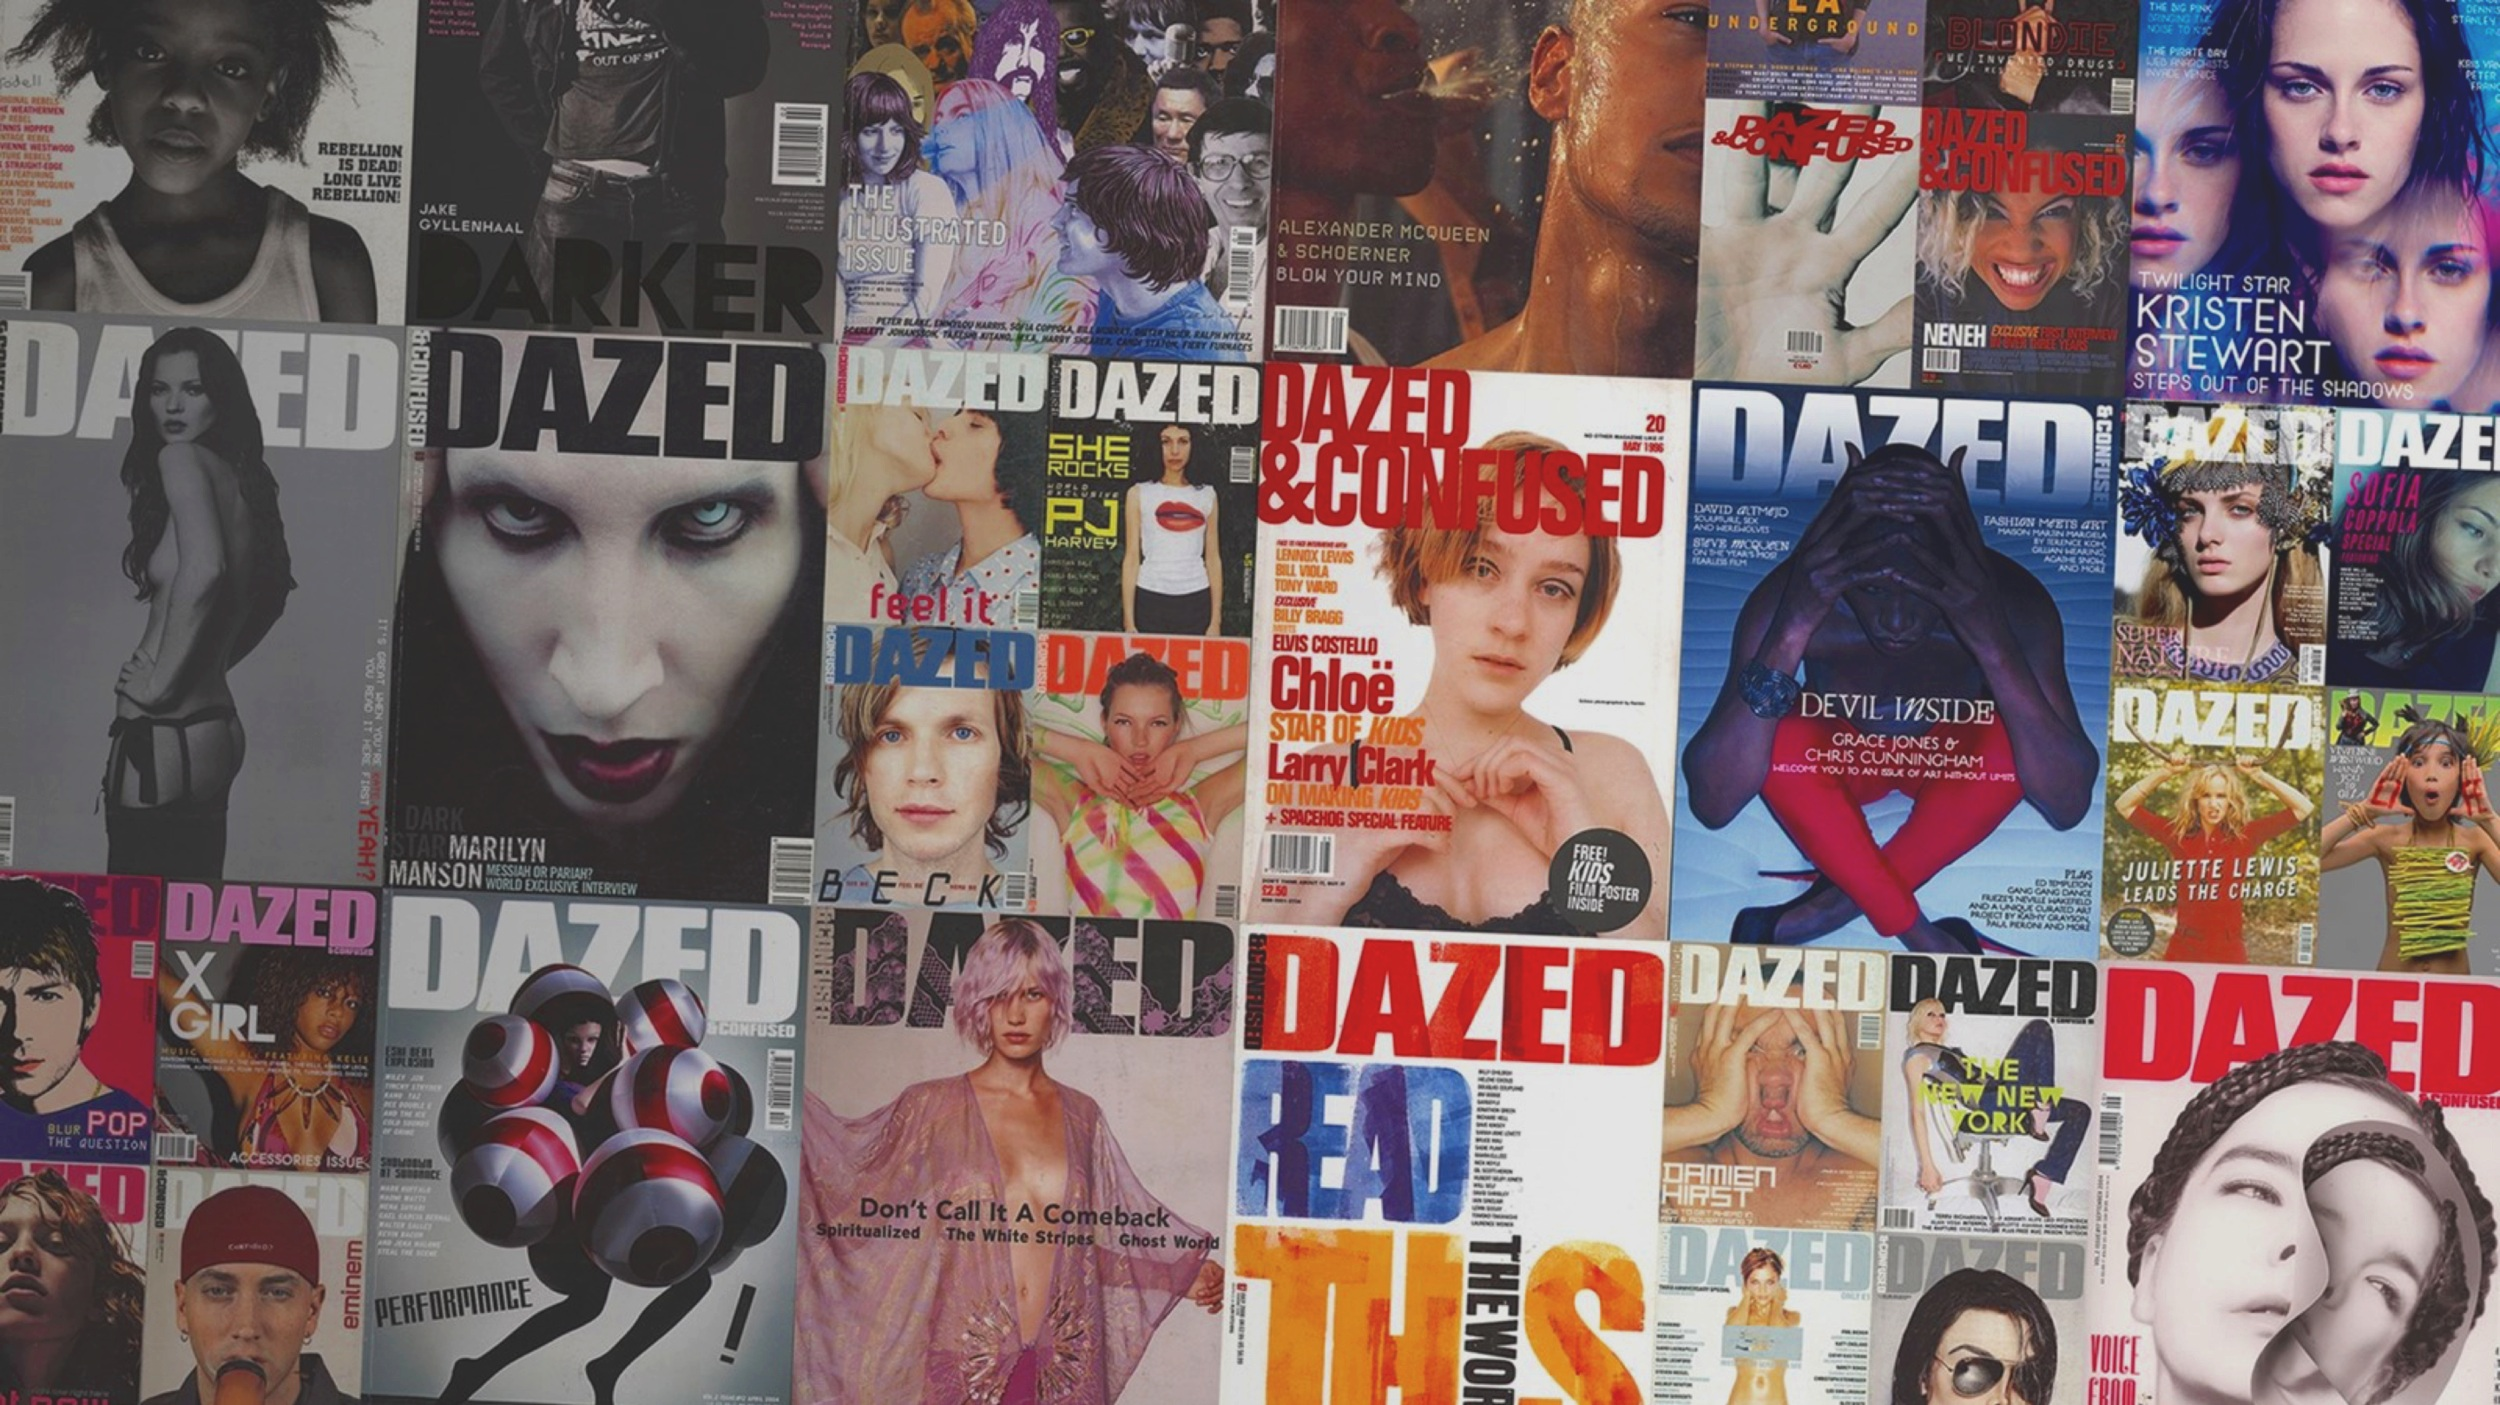 DAZED MAGAZINE - Dazed and Confused use keynote everyday and wanted to learn how to take their abilities to the next level. Across five chapters: Storytelling, Formatting, Styles, Structures and Hacks - we taught the team how to master the basics and make them work in your favour as a creative agency and global publication. We knew a group of creative individuals wouldn't want to be spoken to, which is why 80% of the workshop was spent on keynote challenges.